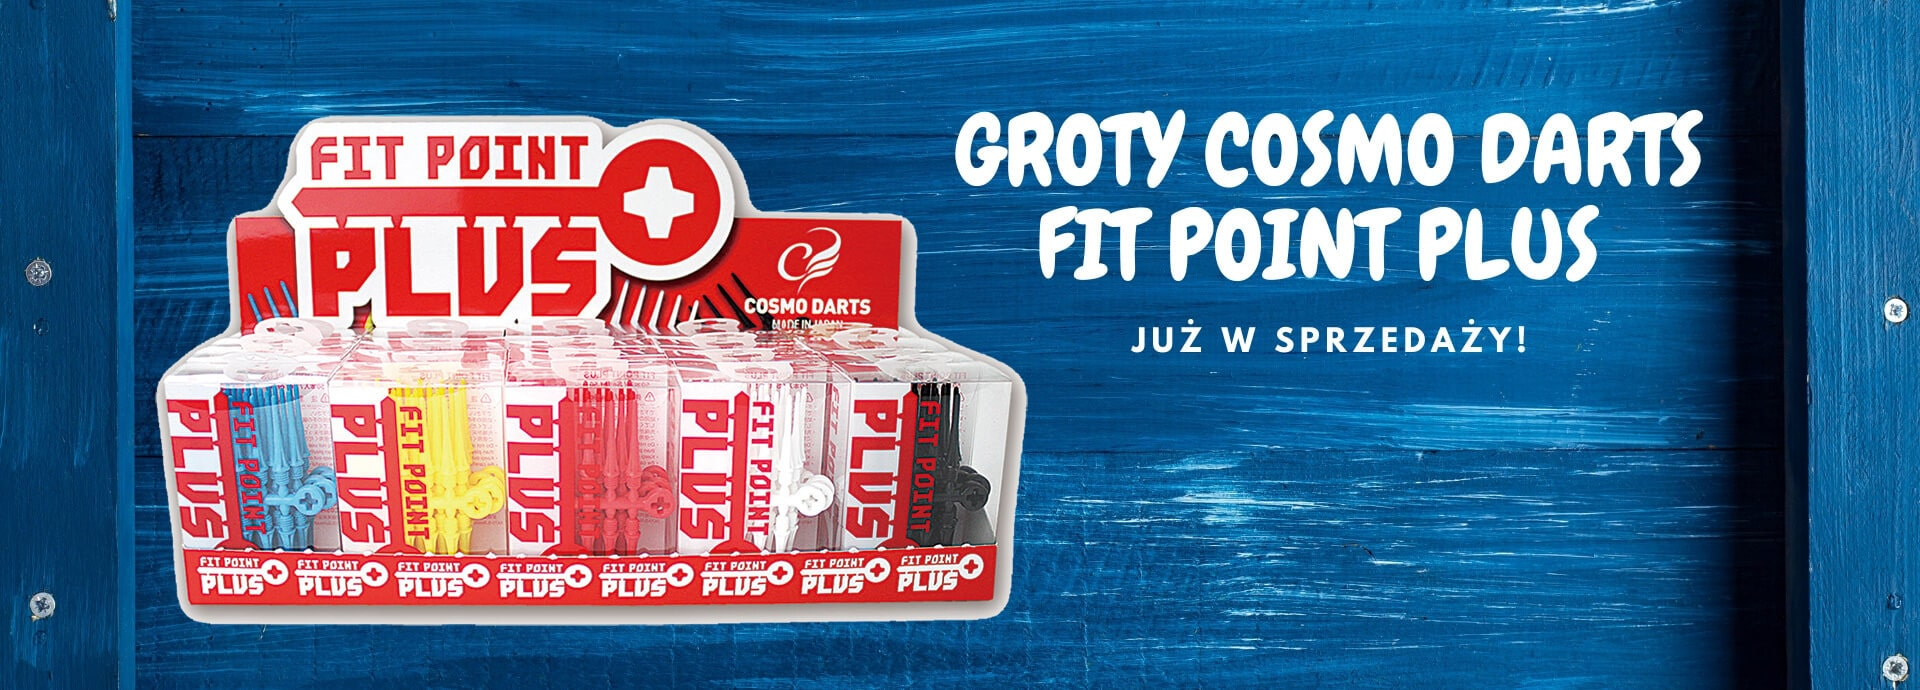 Groty softip Cosmo Darts Fit Point Plus